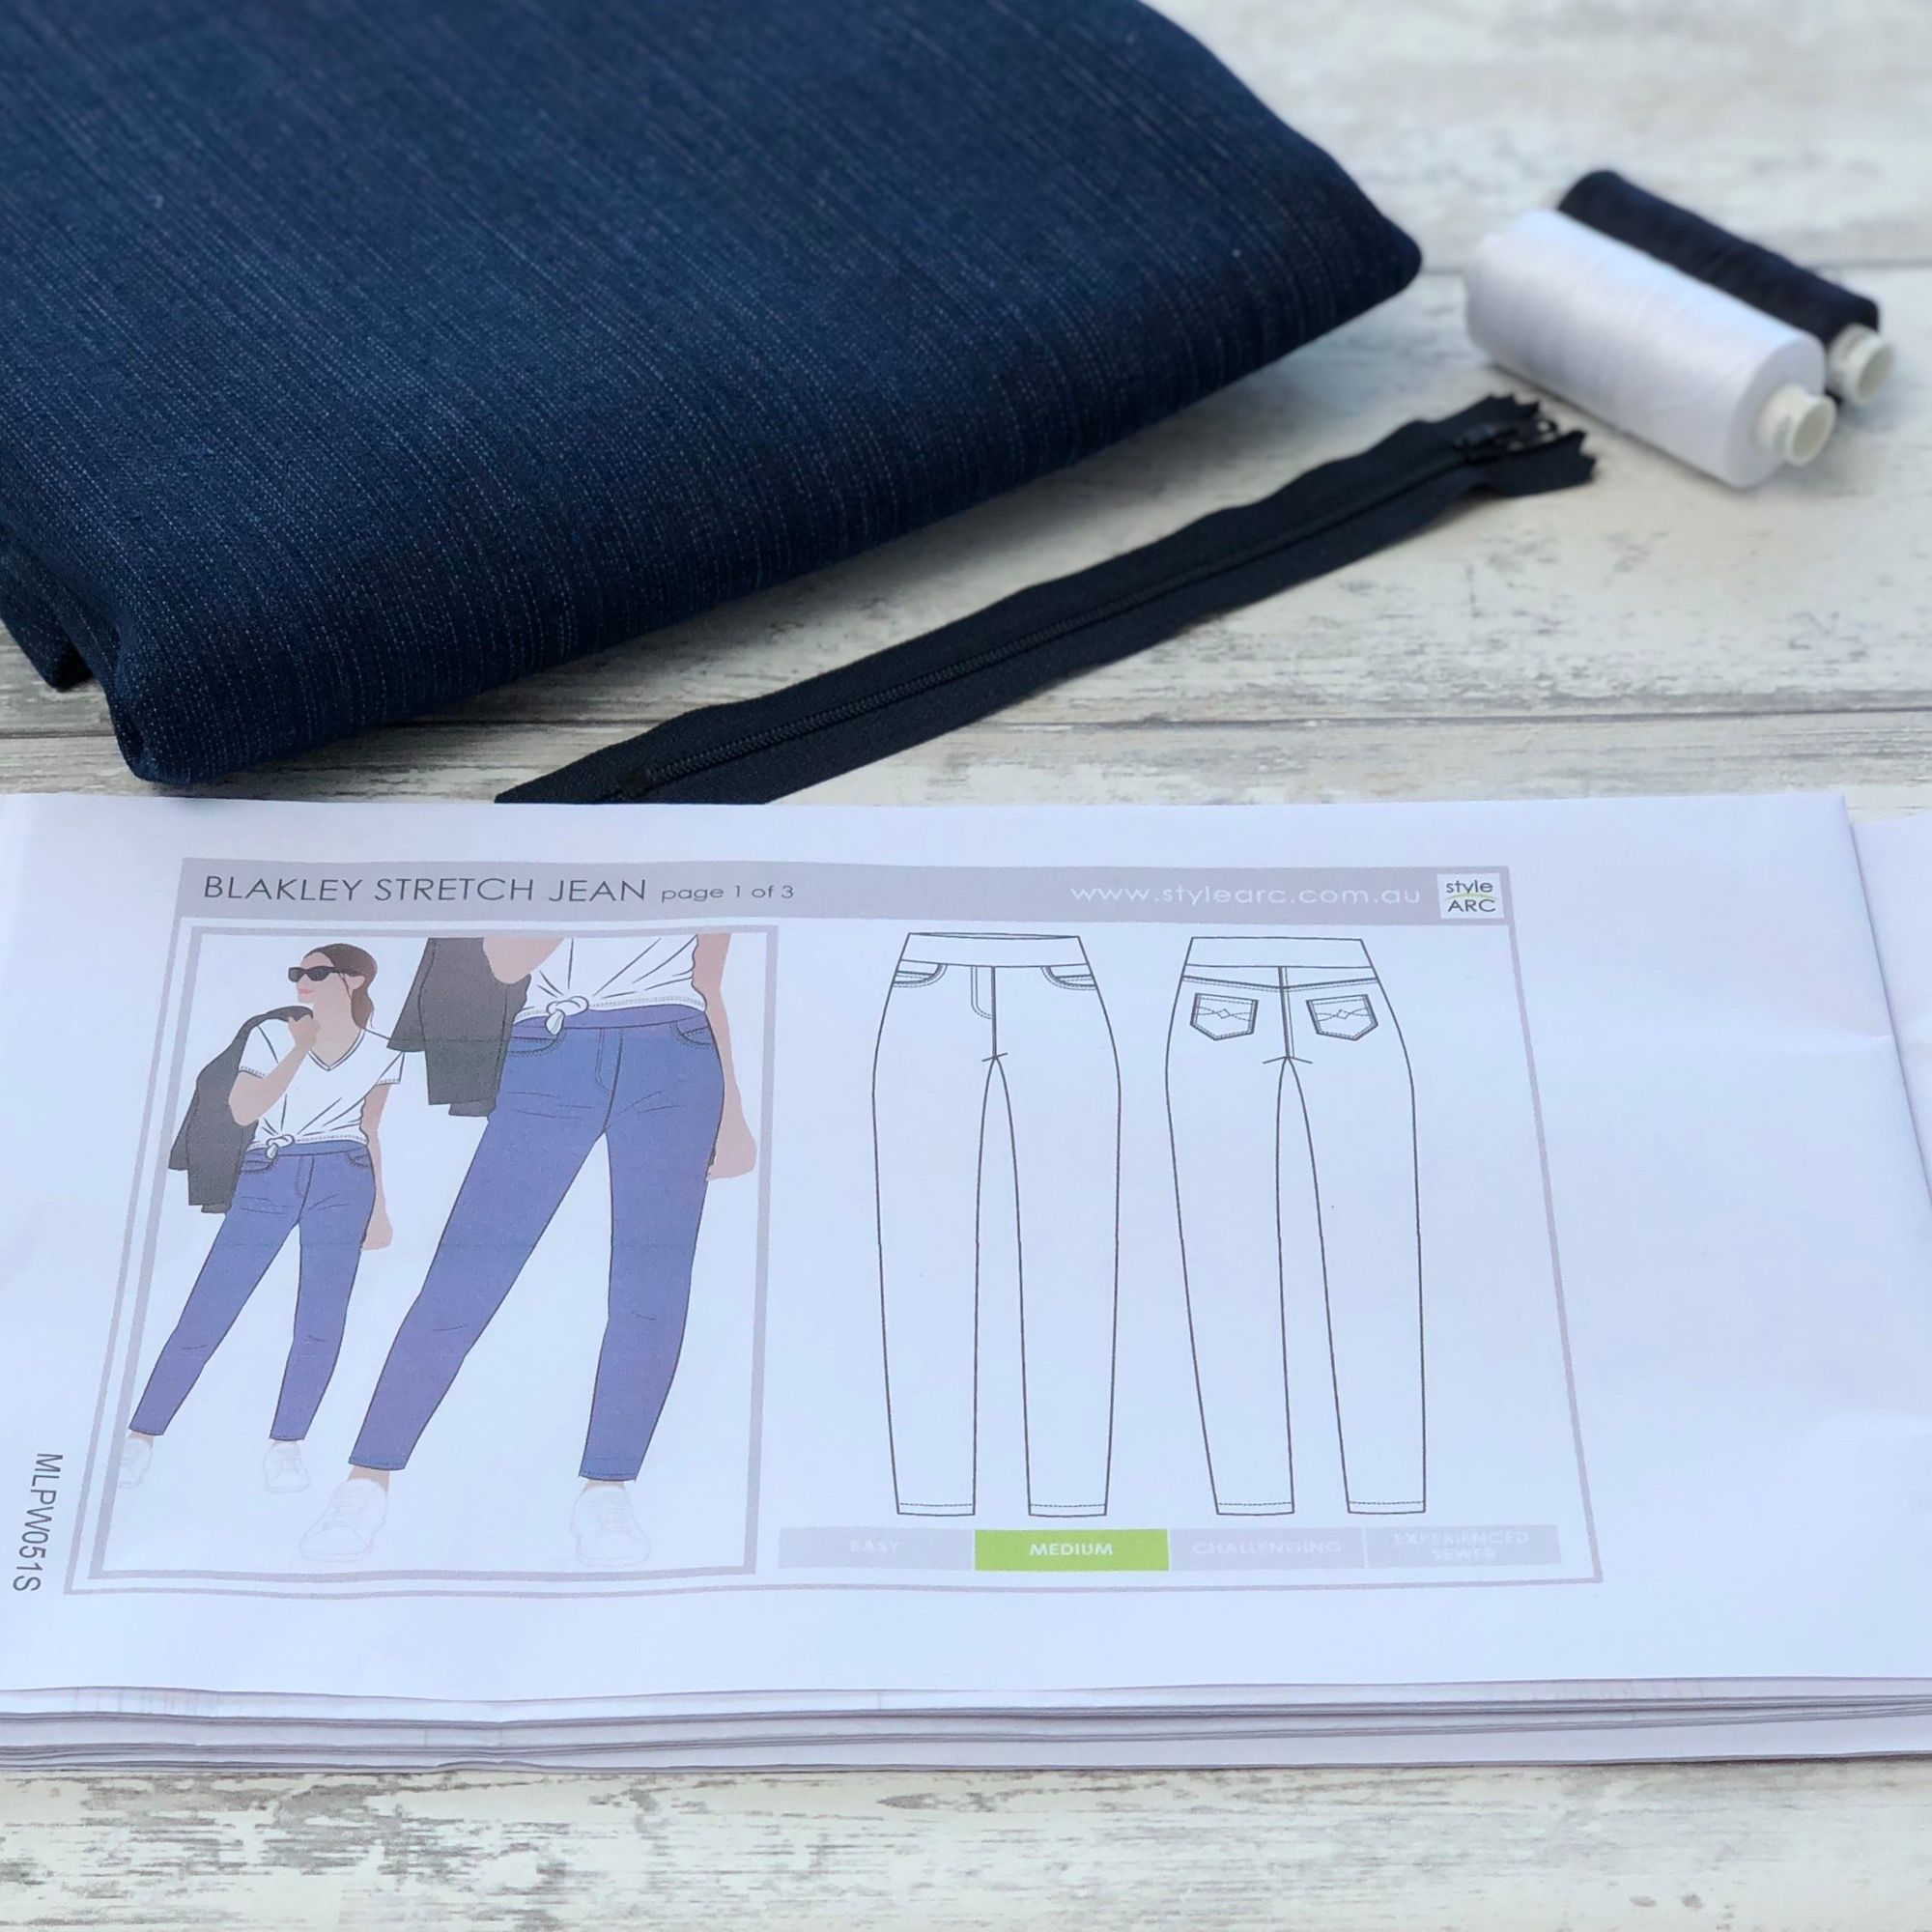 Latest post on the Minerva Blogger Network - Blakley Style Arc Jeans